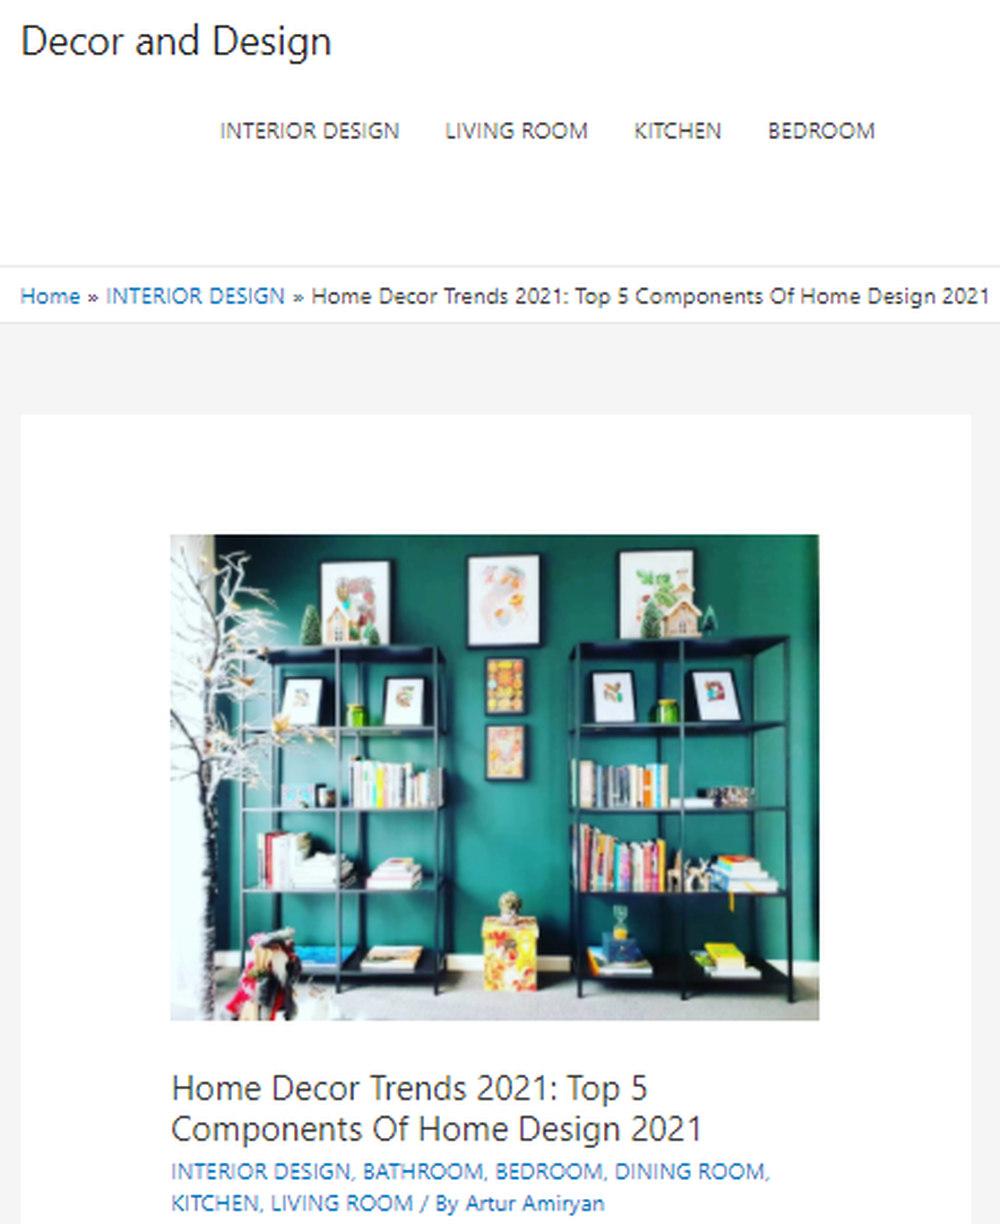 Home-Decor-Trends-2021-Top-5-Components-Of-Home-Design-2021 (1).png